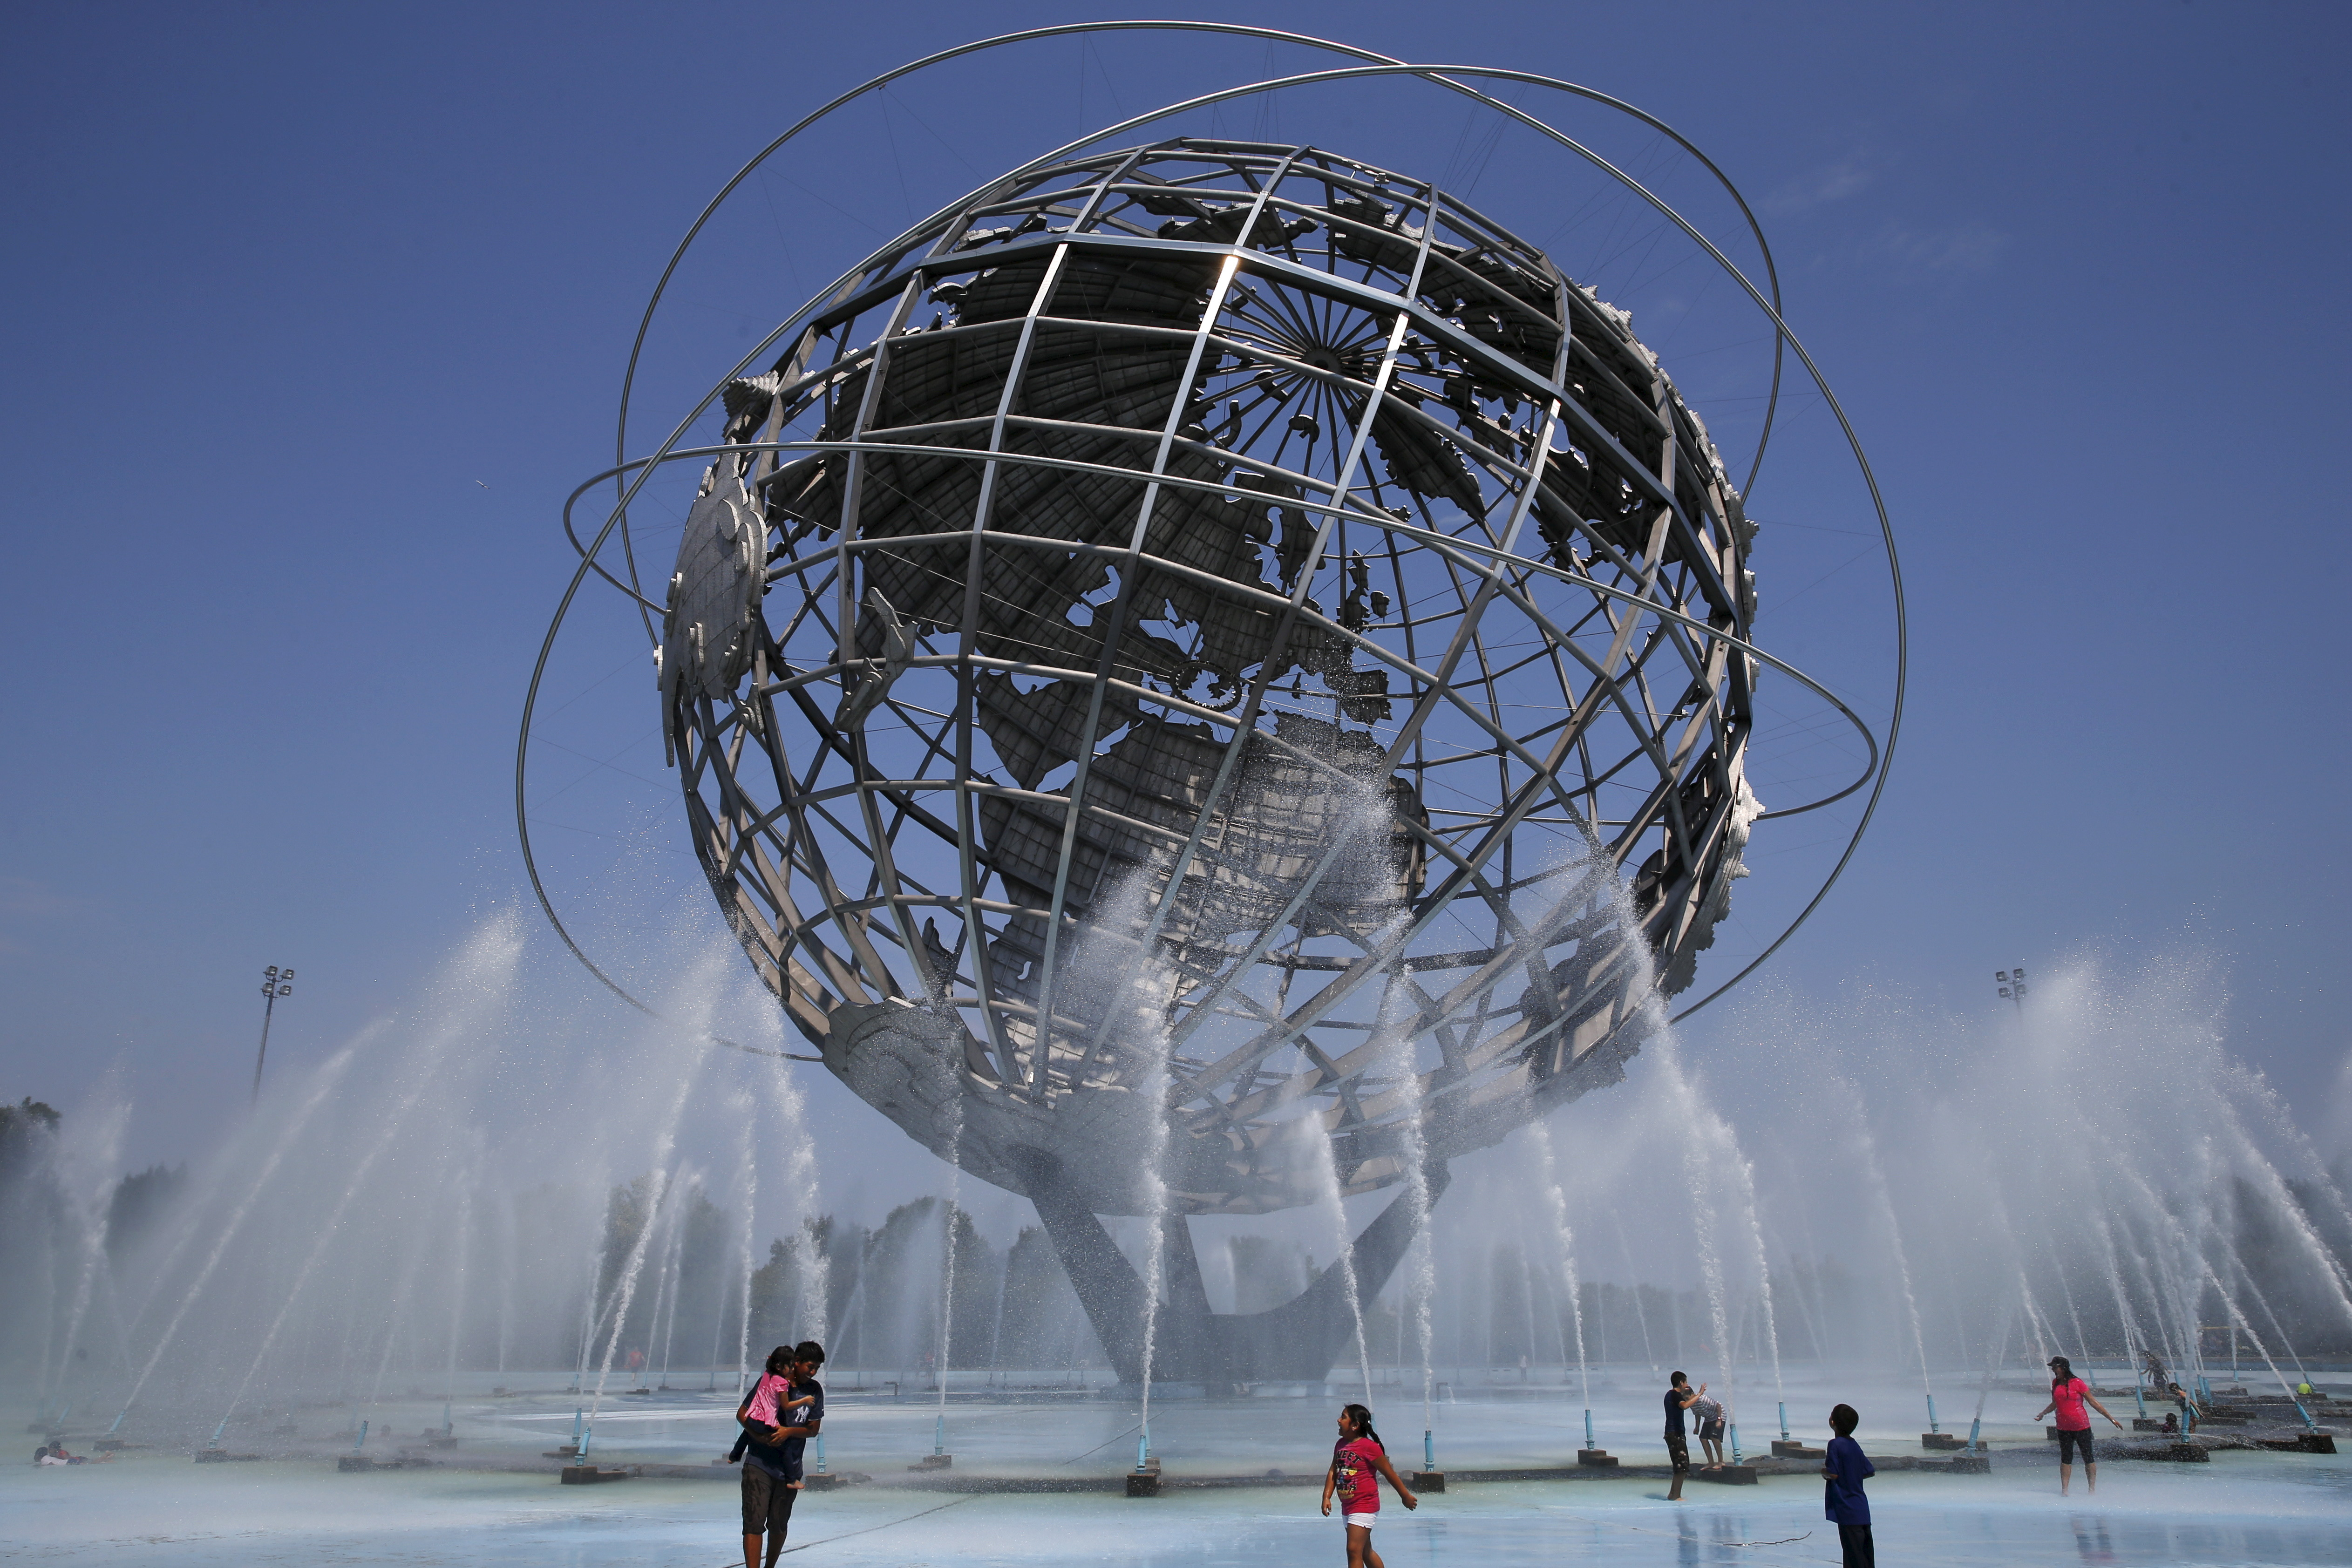 People cool off in the water at the Unisphere at Flushing Meadows Corona Park in the Queens borough of New York in 2015.